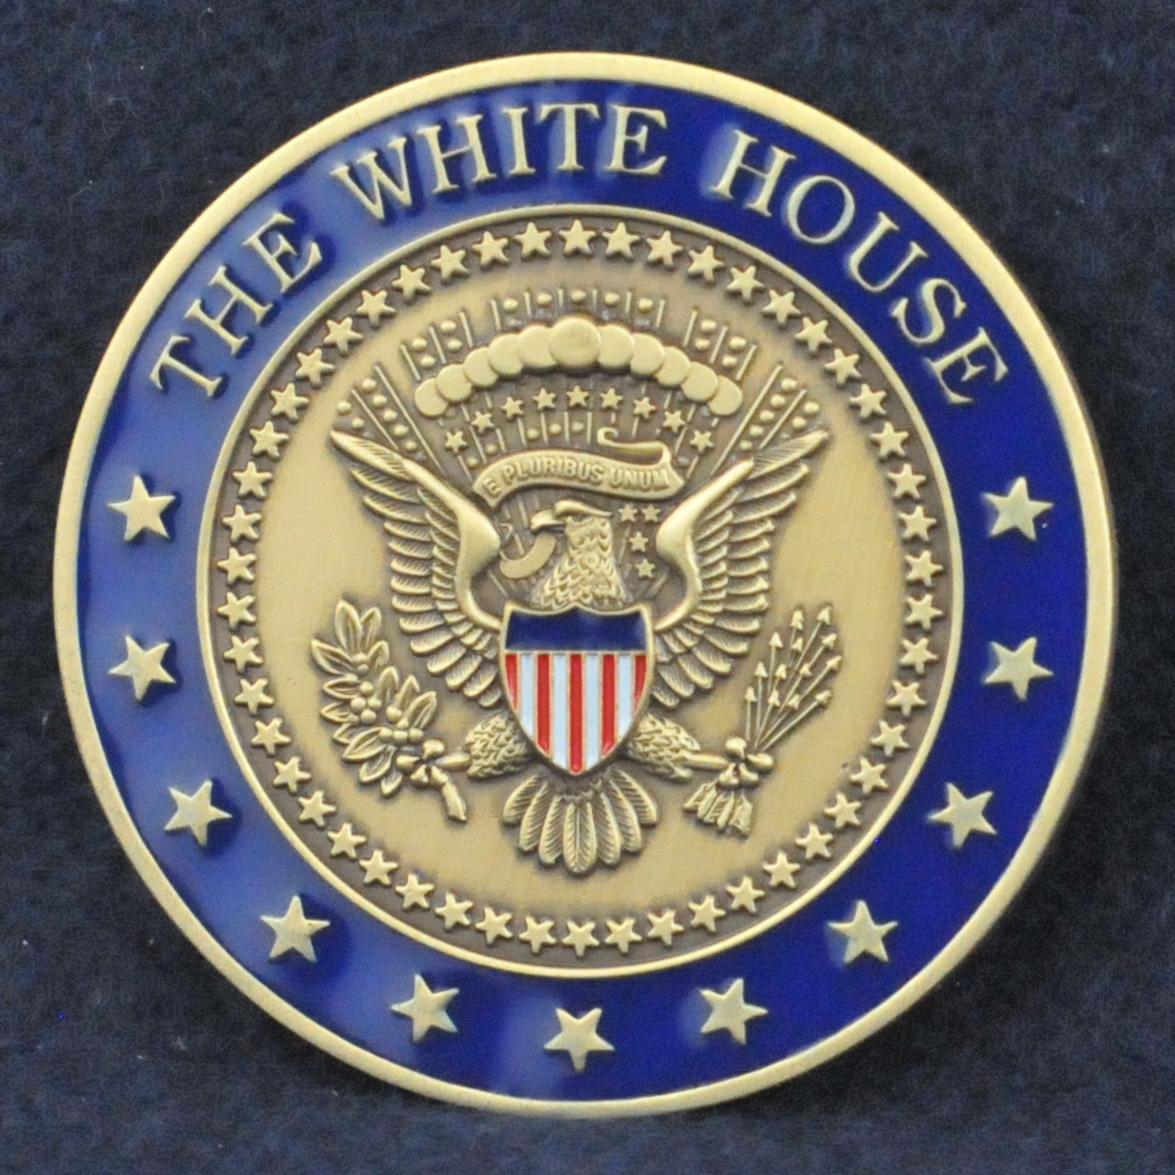 United States Secret Service, Uniformed Division, Foreign Missions Branch